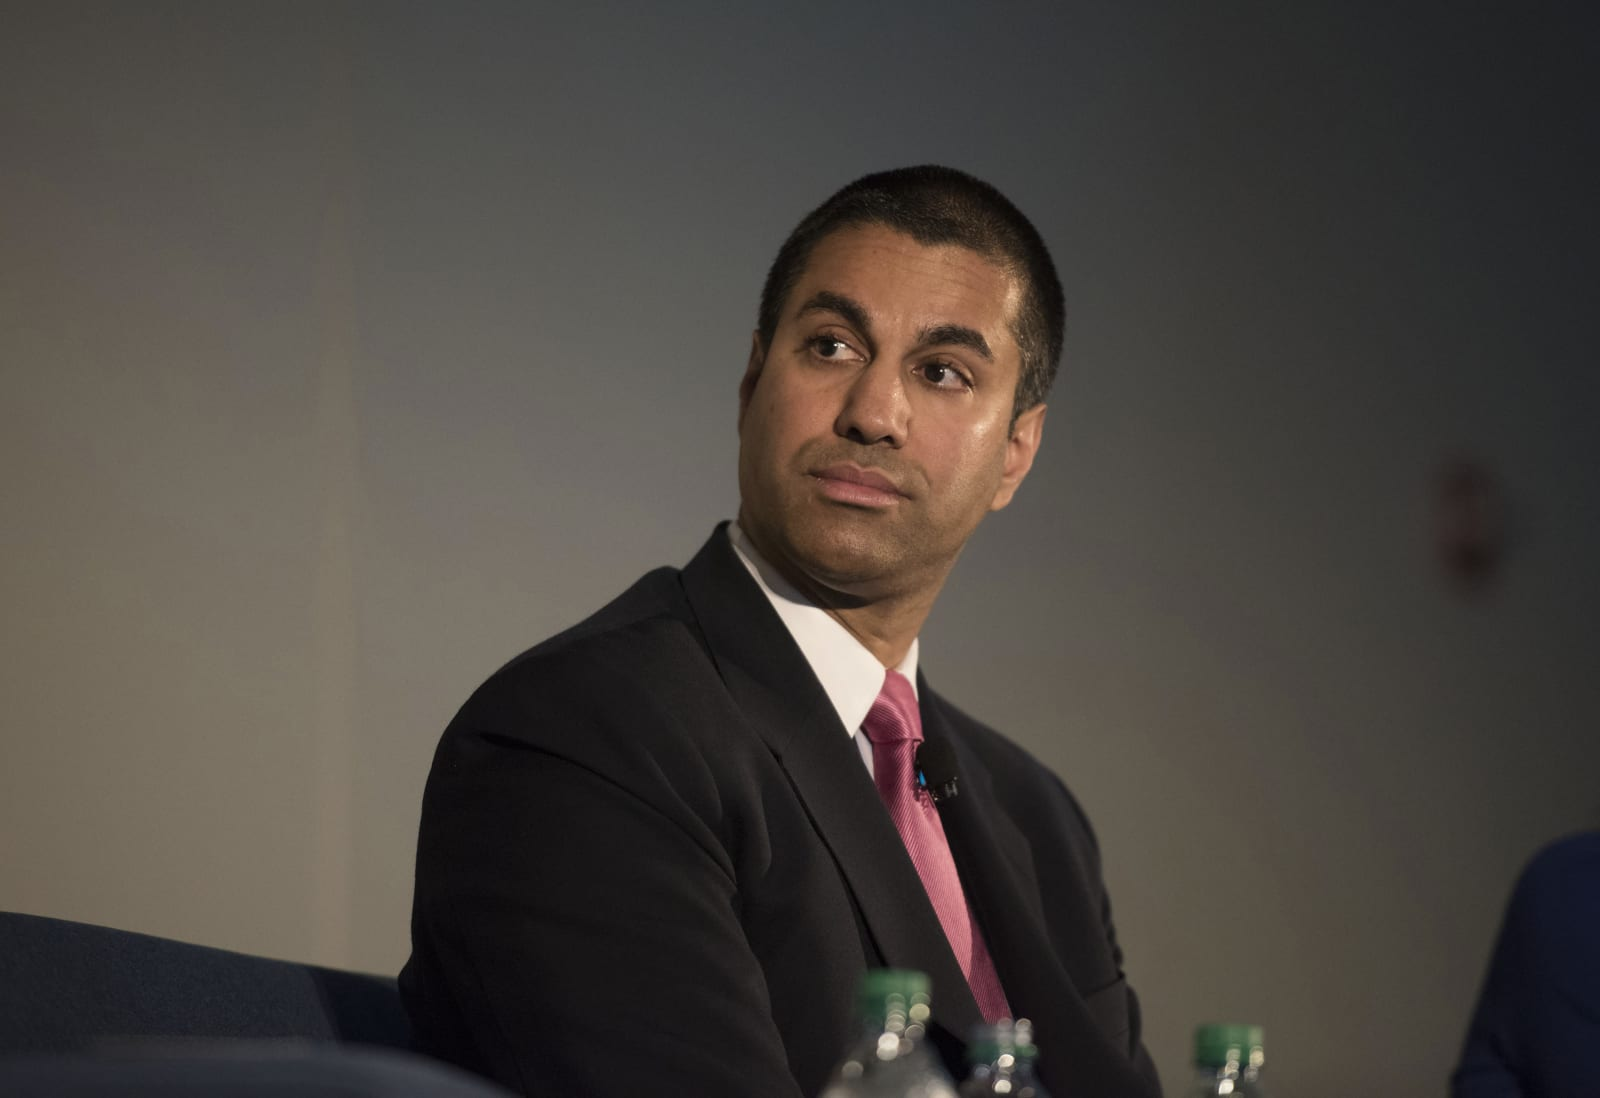 Ajit Pai confirmed as new head of the FCC